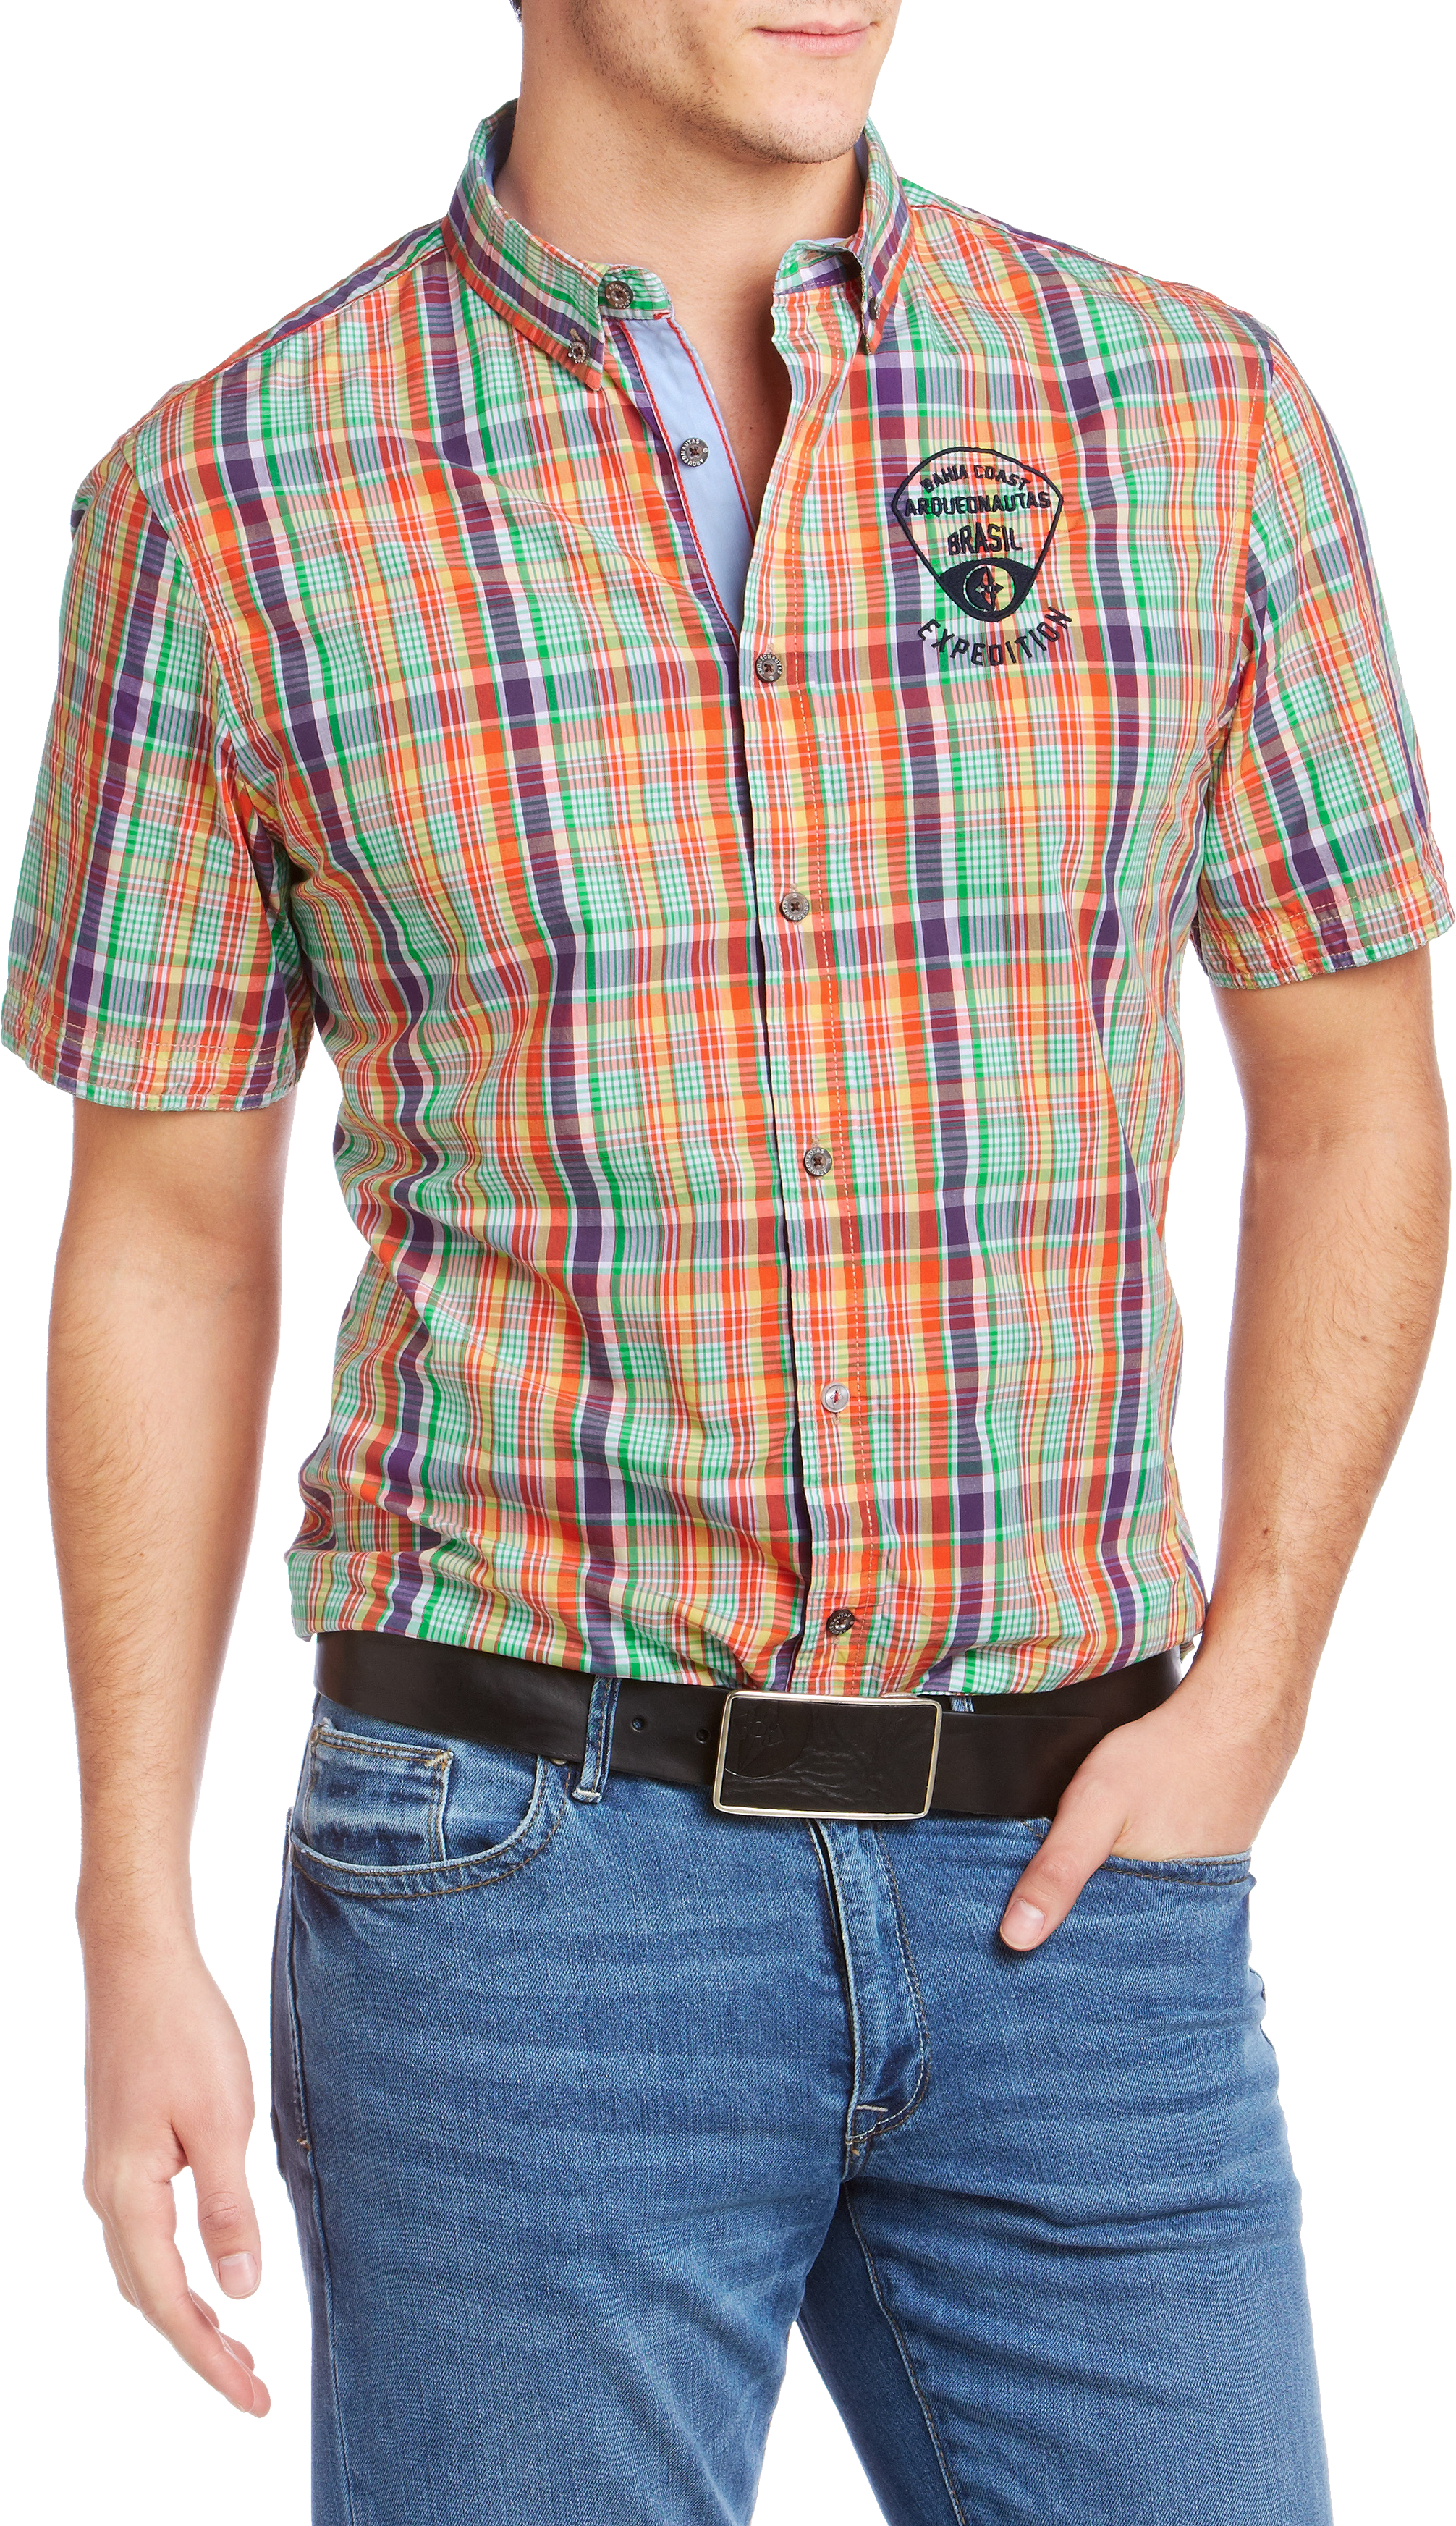 Men polo shirt PNG image - Men Clothes PNG